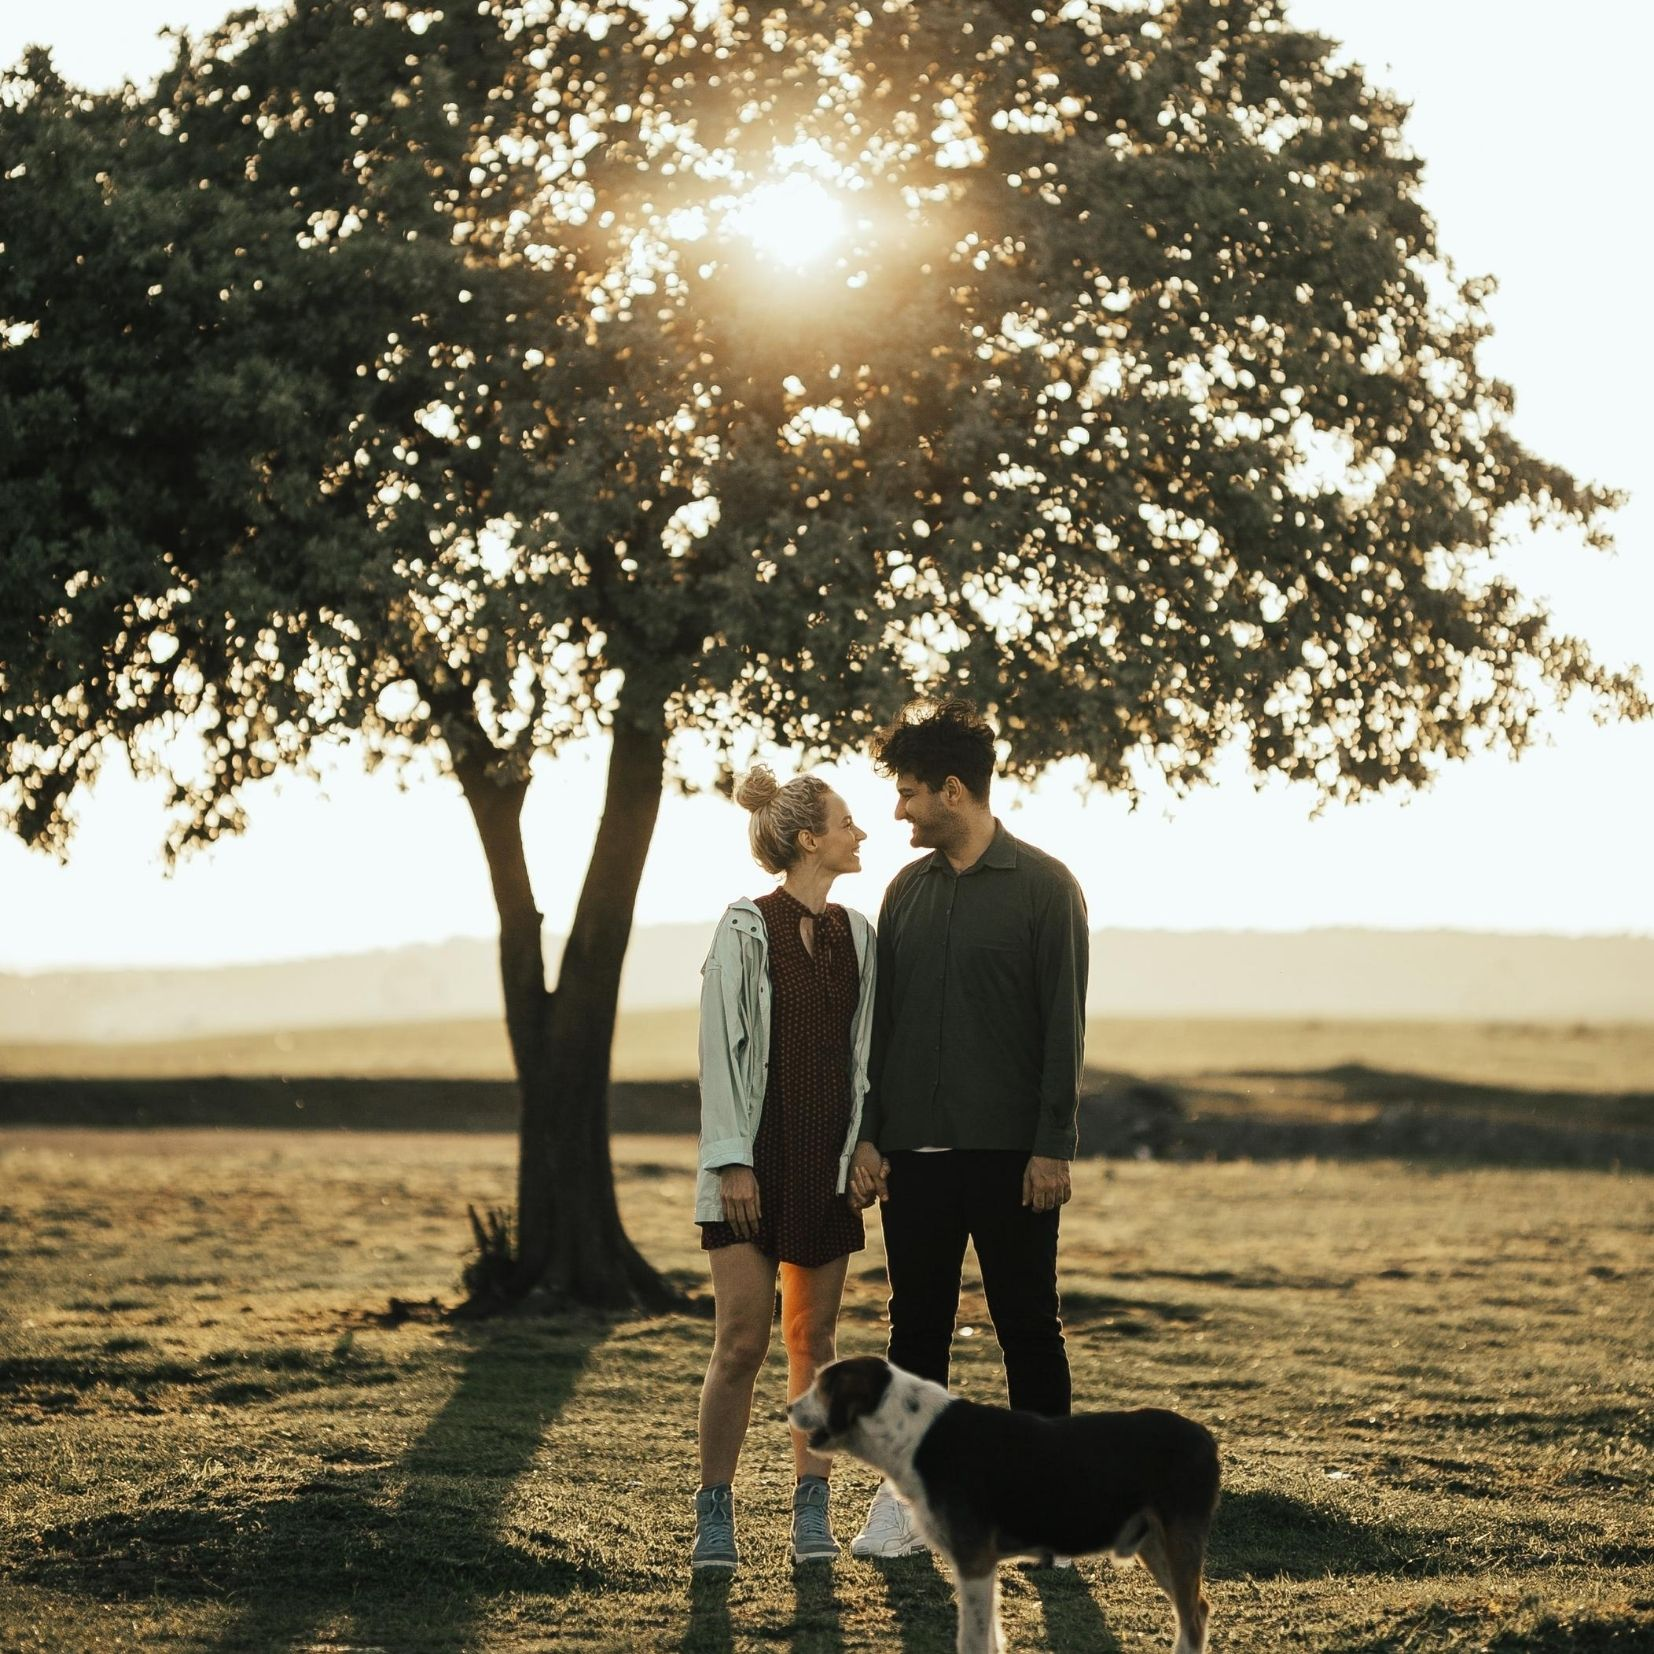 couple spending quality time together with dog in nature